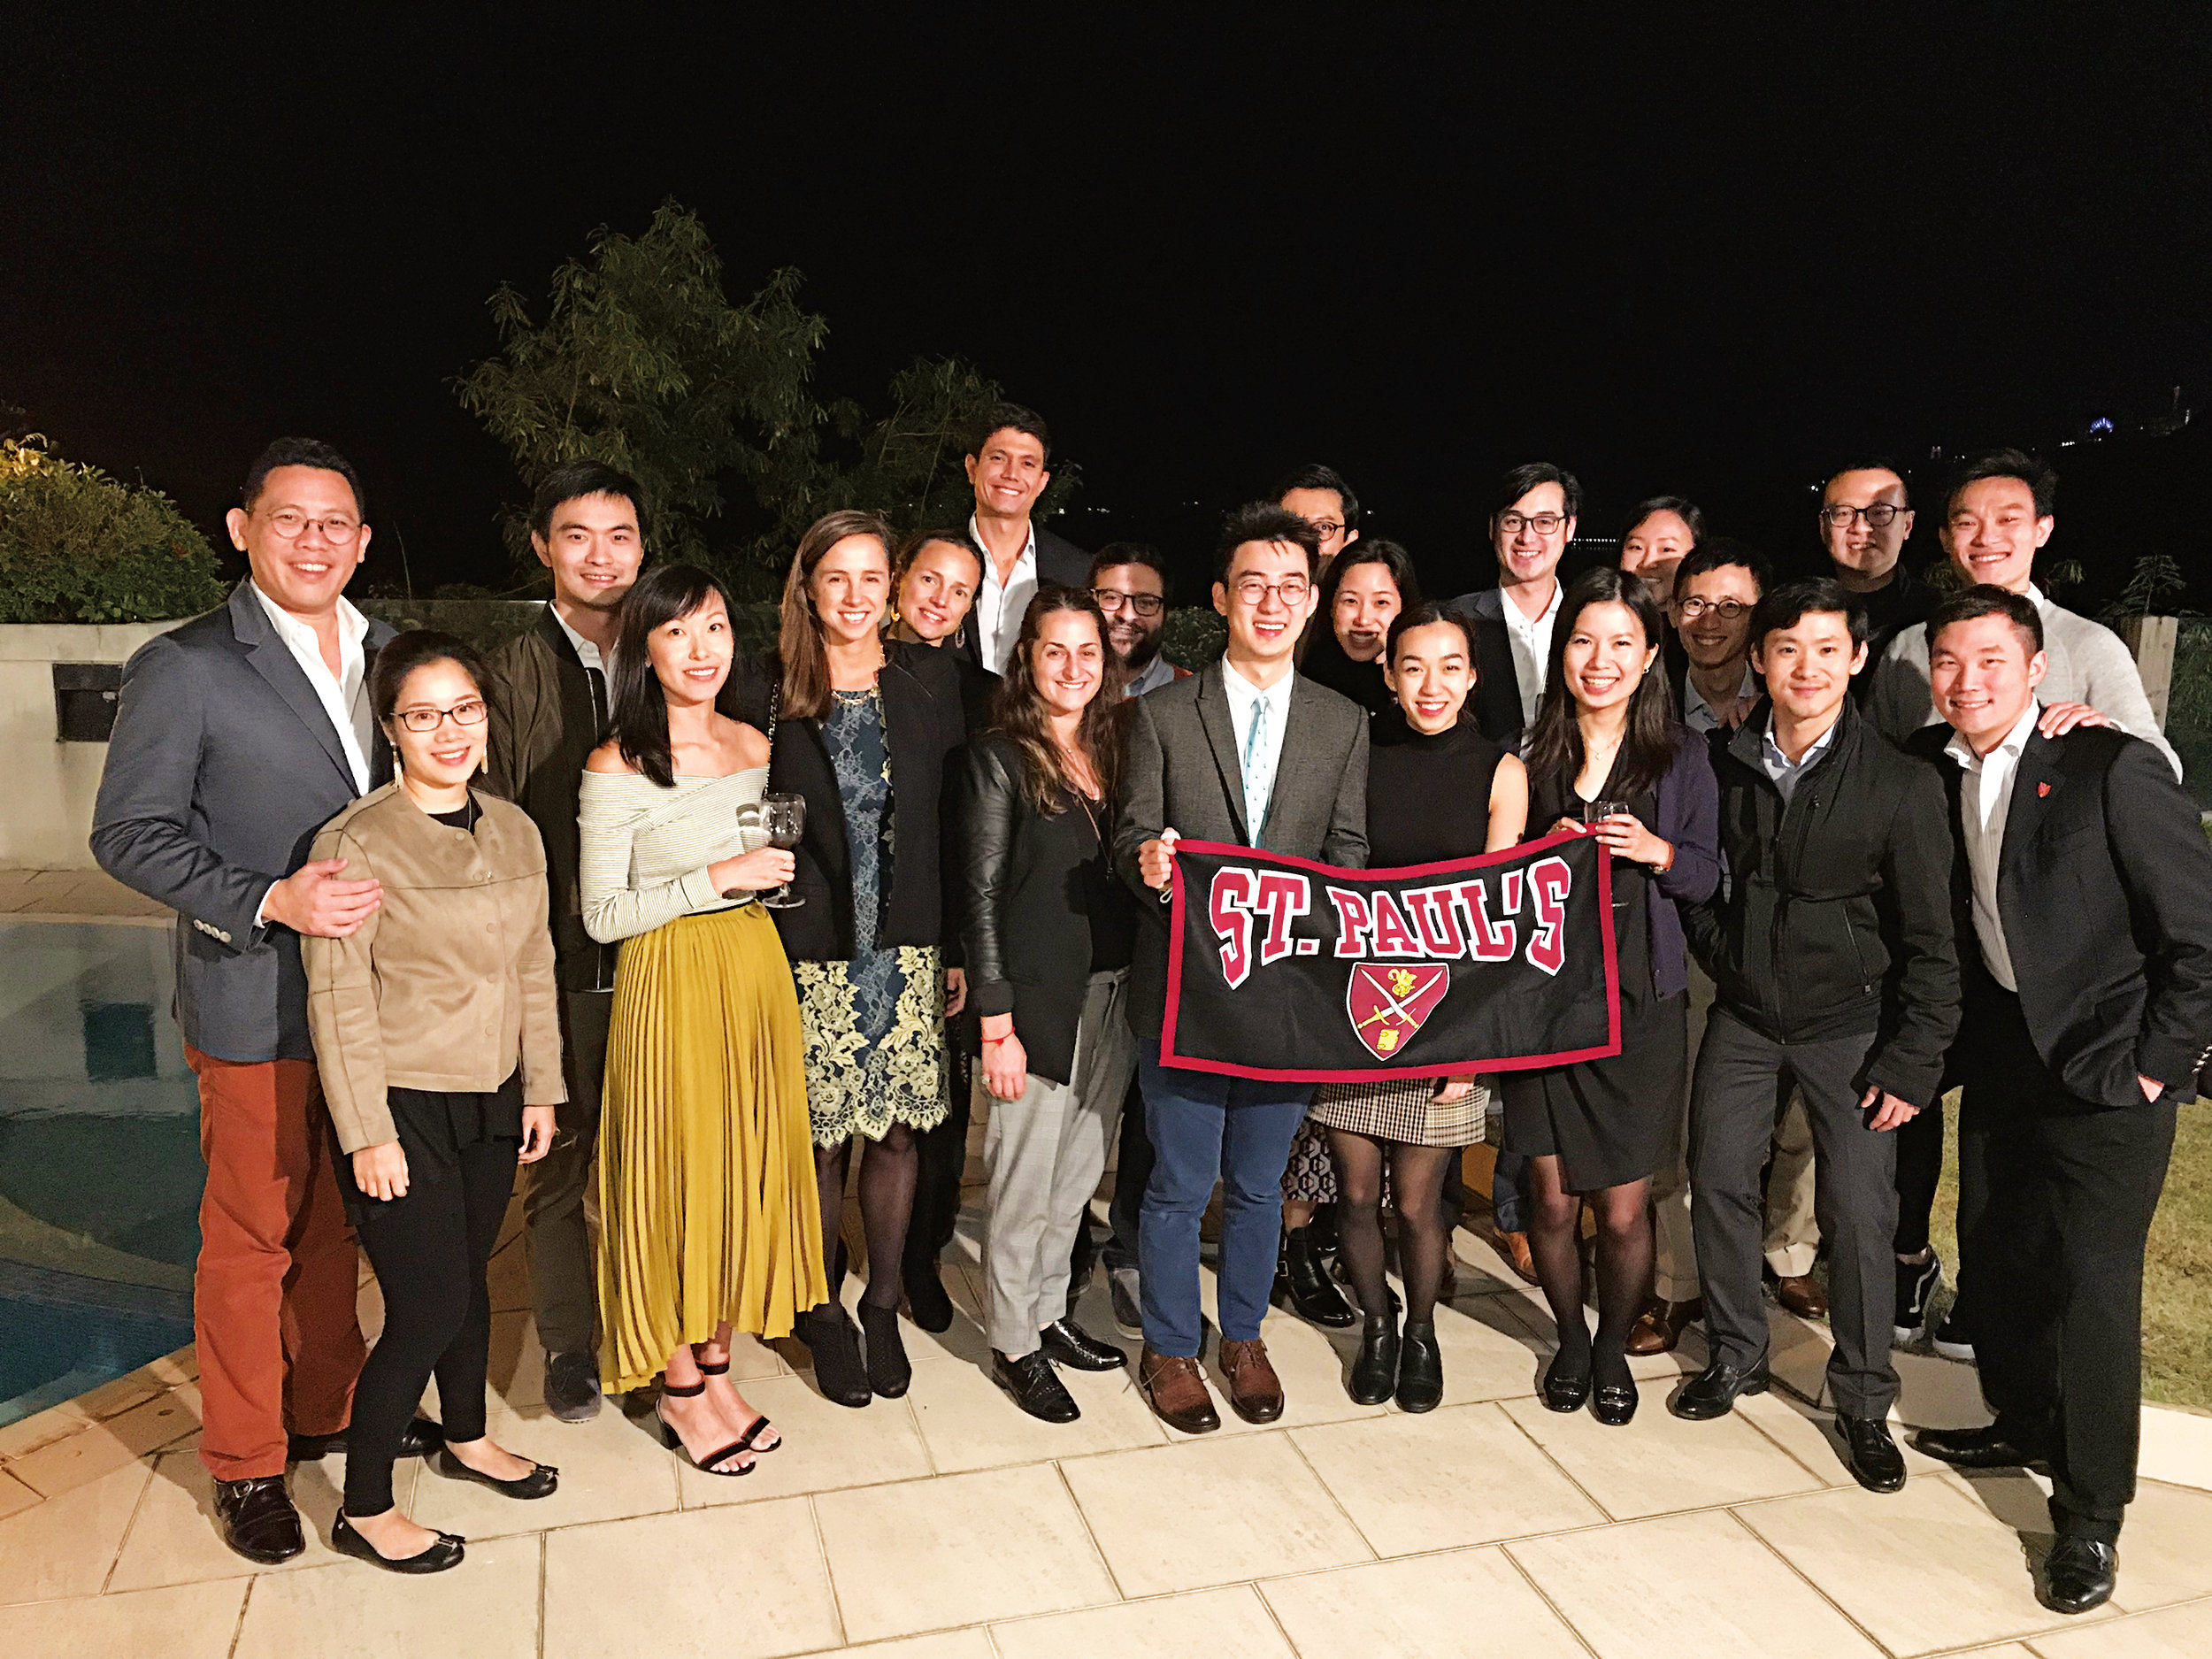 The Hong Kong Pelicans hosted their annual Thanksgiving dinner. Attendees included (l. to r.): Fergus Fung and wife Terri-Ann Fung '97, Jeffrey Ma '03 and wife Melissa Tse, Olivia Carega '02, Francesca Carega '92, Tom Allen '01, Alex Kumin Solomon '98 and husband Justin Solomon, Michael Wong '08, Valerie Ho '04, Christina Wong '12, Drew Camarda '04, Natalie Tse '09, Jason Lam '01, Edmond Cheuk '05, Julian Cheng '92, Jonathan Tam '04, and Calvin Ma '04.